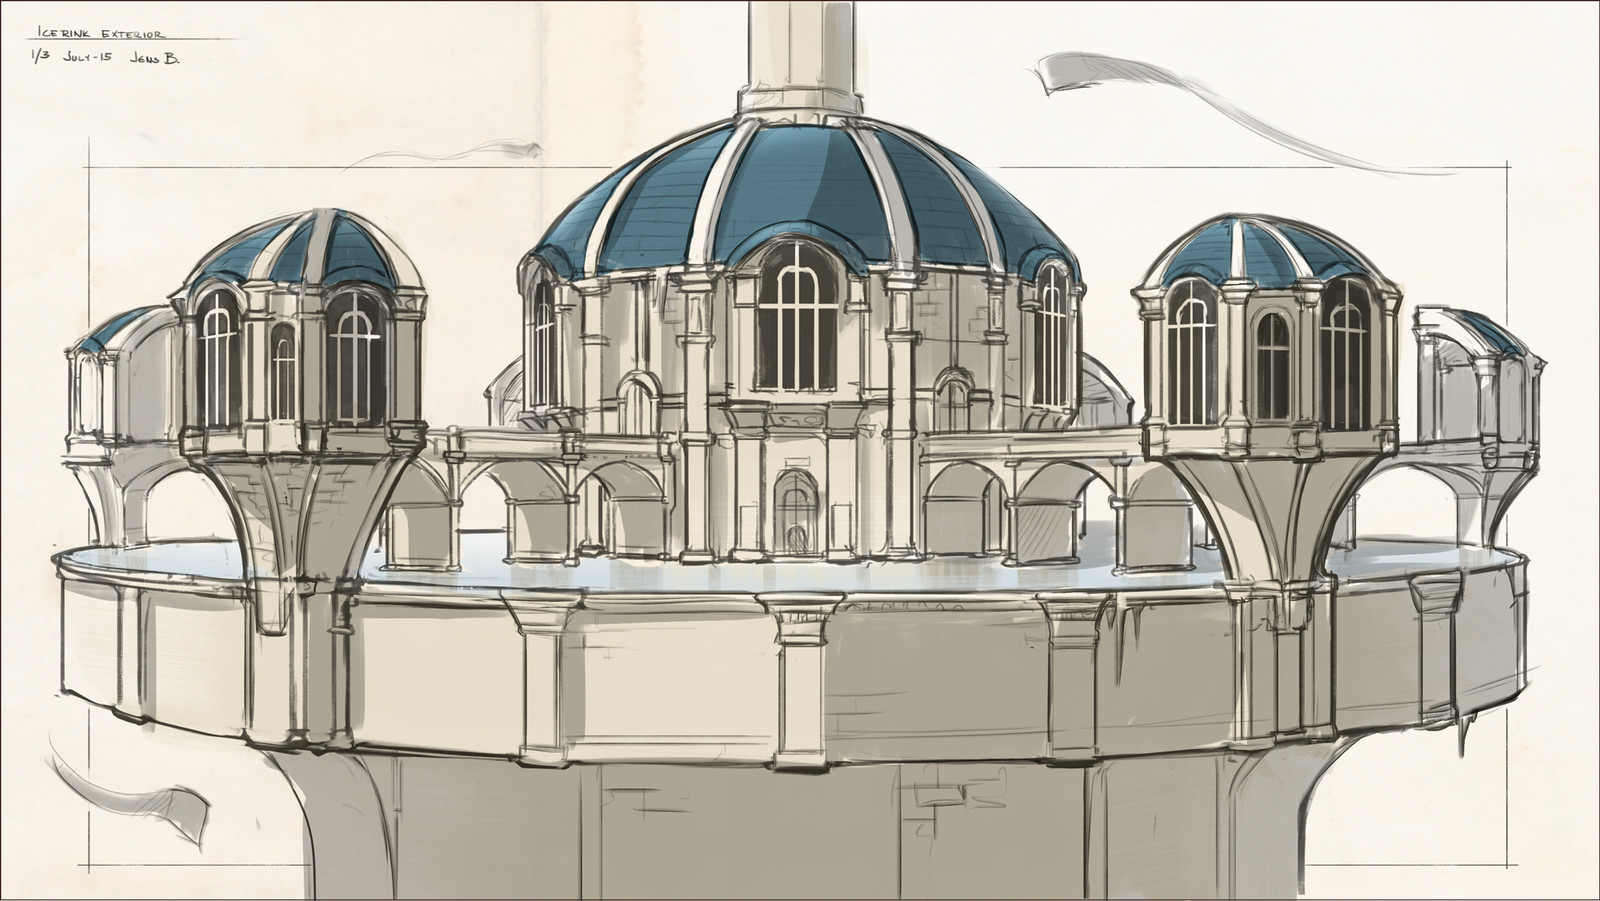 Putting it all together: The exterior of the Ice Rink and Café.